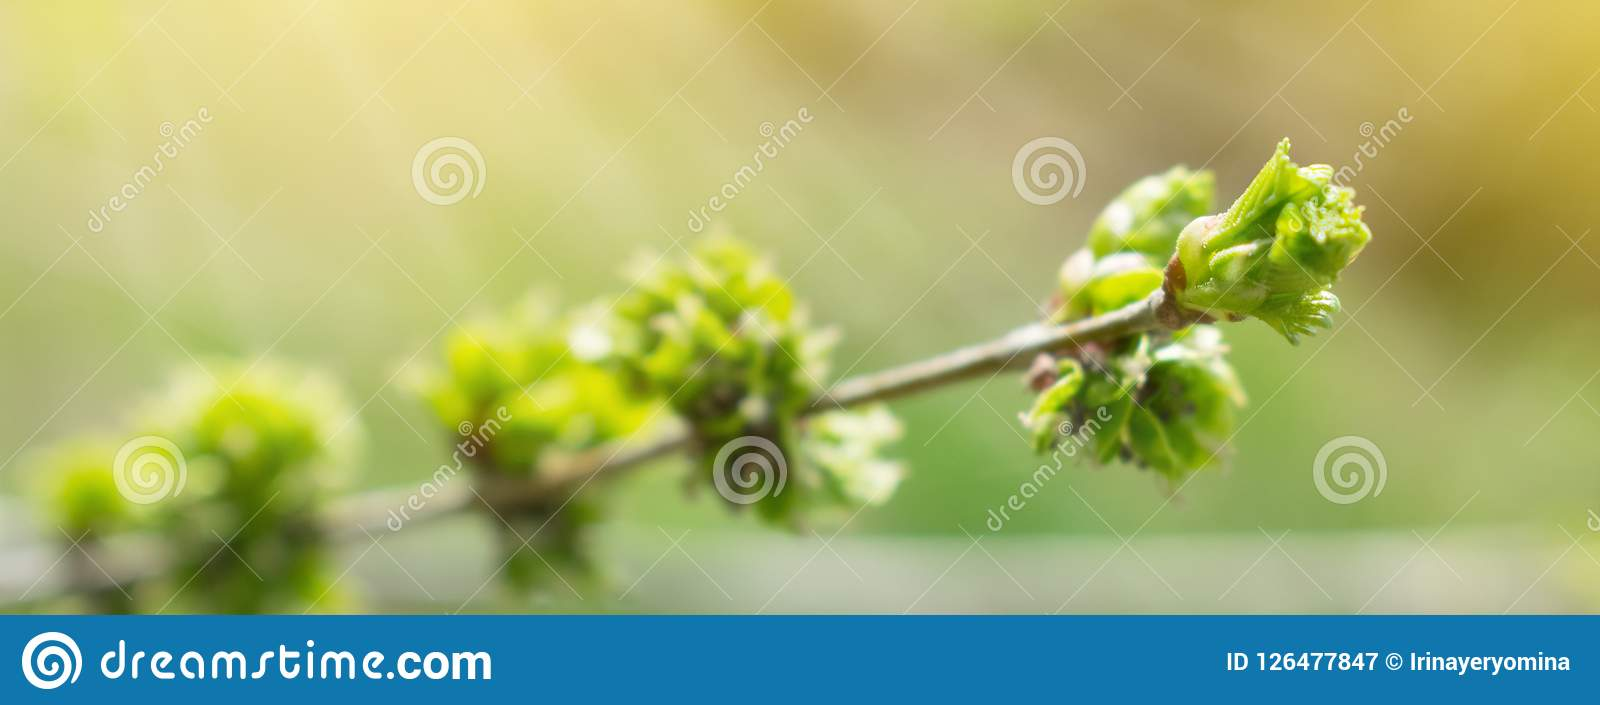 Spring background with branch and blooming young green leaves. C